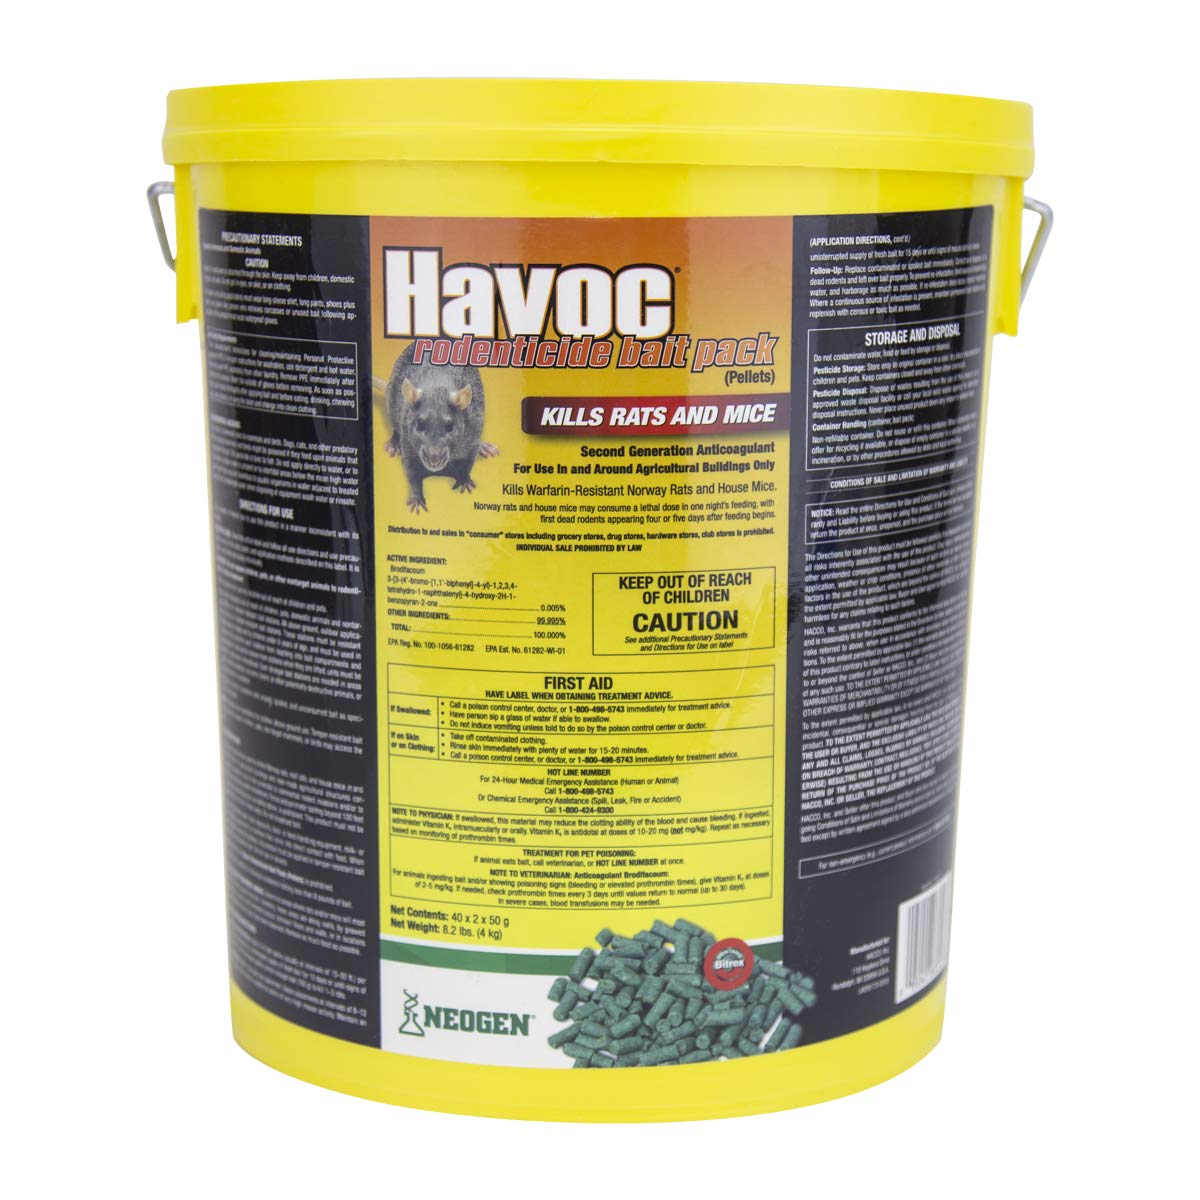 Neogen Havoc 116372 Rodenticide Bait Place Packs, Ready-To-Use Pallets For Control Of Norway Rats, Roof Rats and House Mice, 0.005% Brodifacoum, 40 x 2 x 50g by Havoc